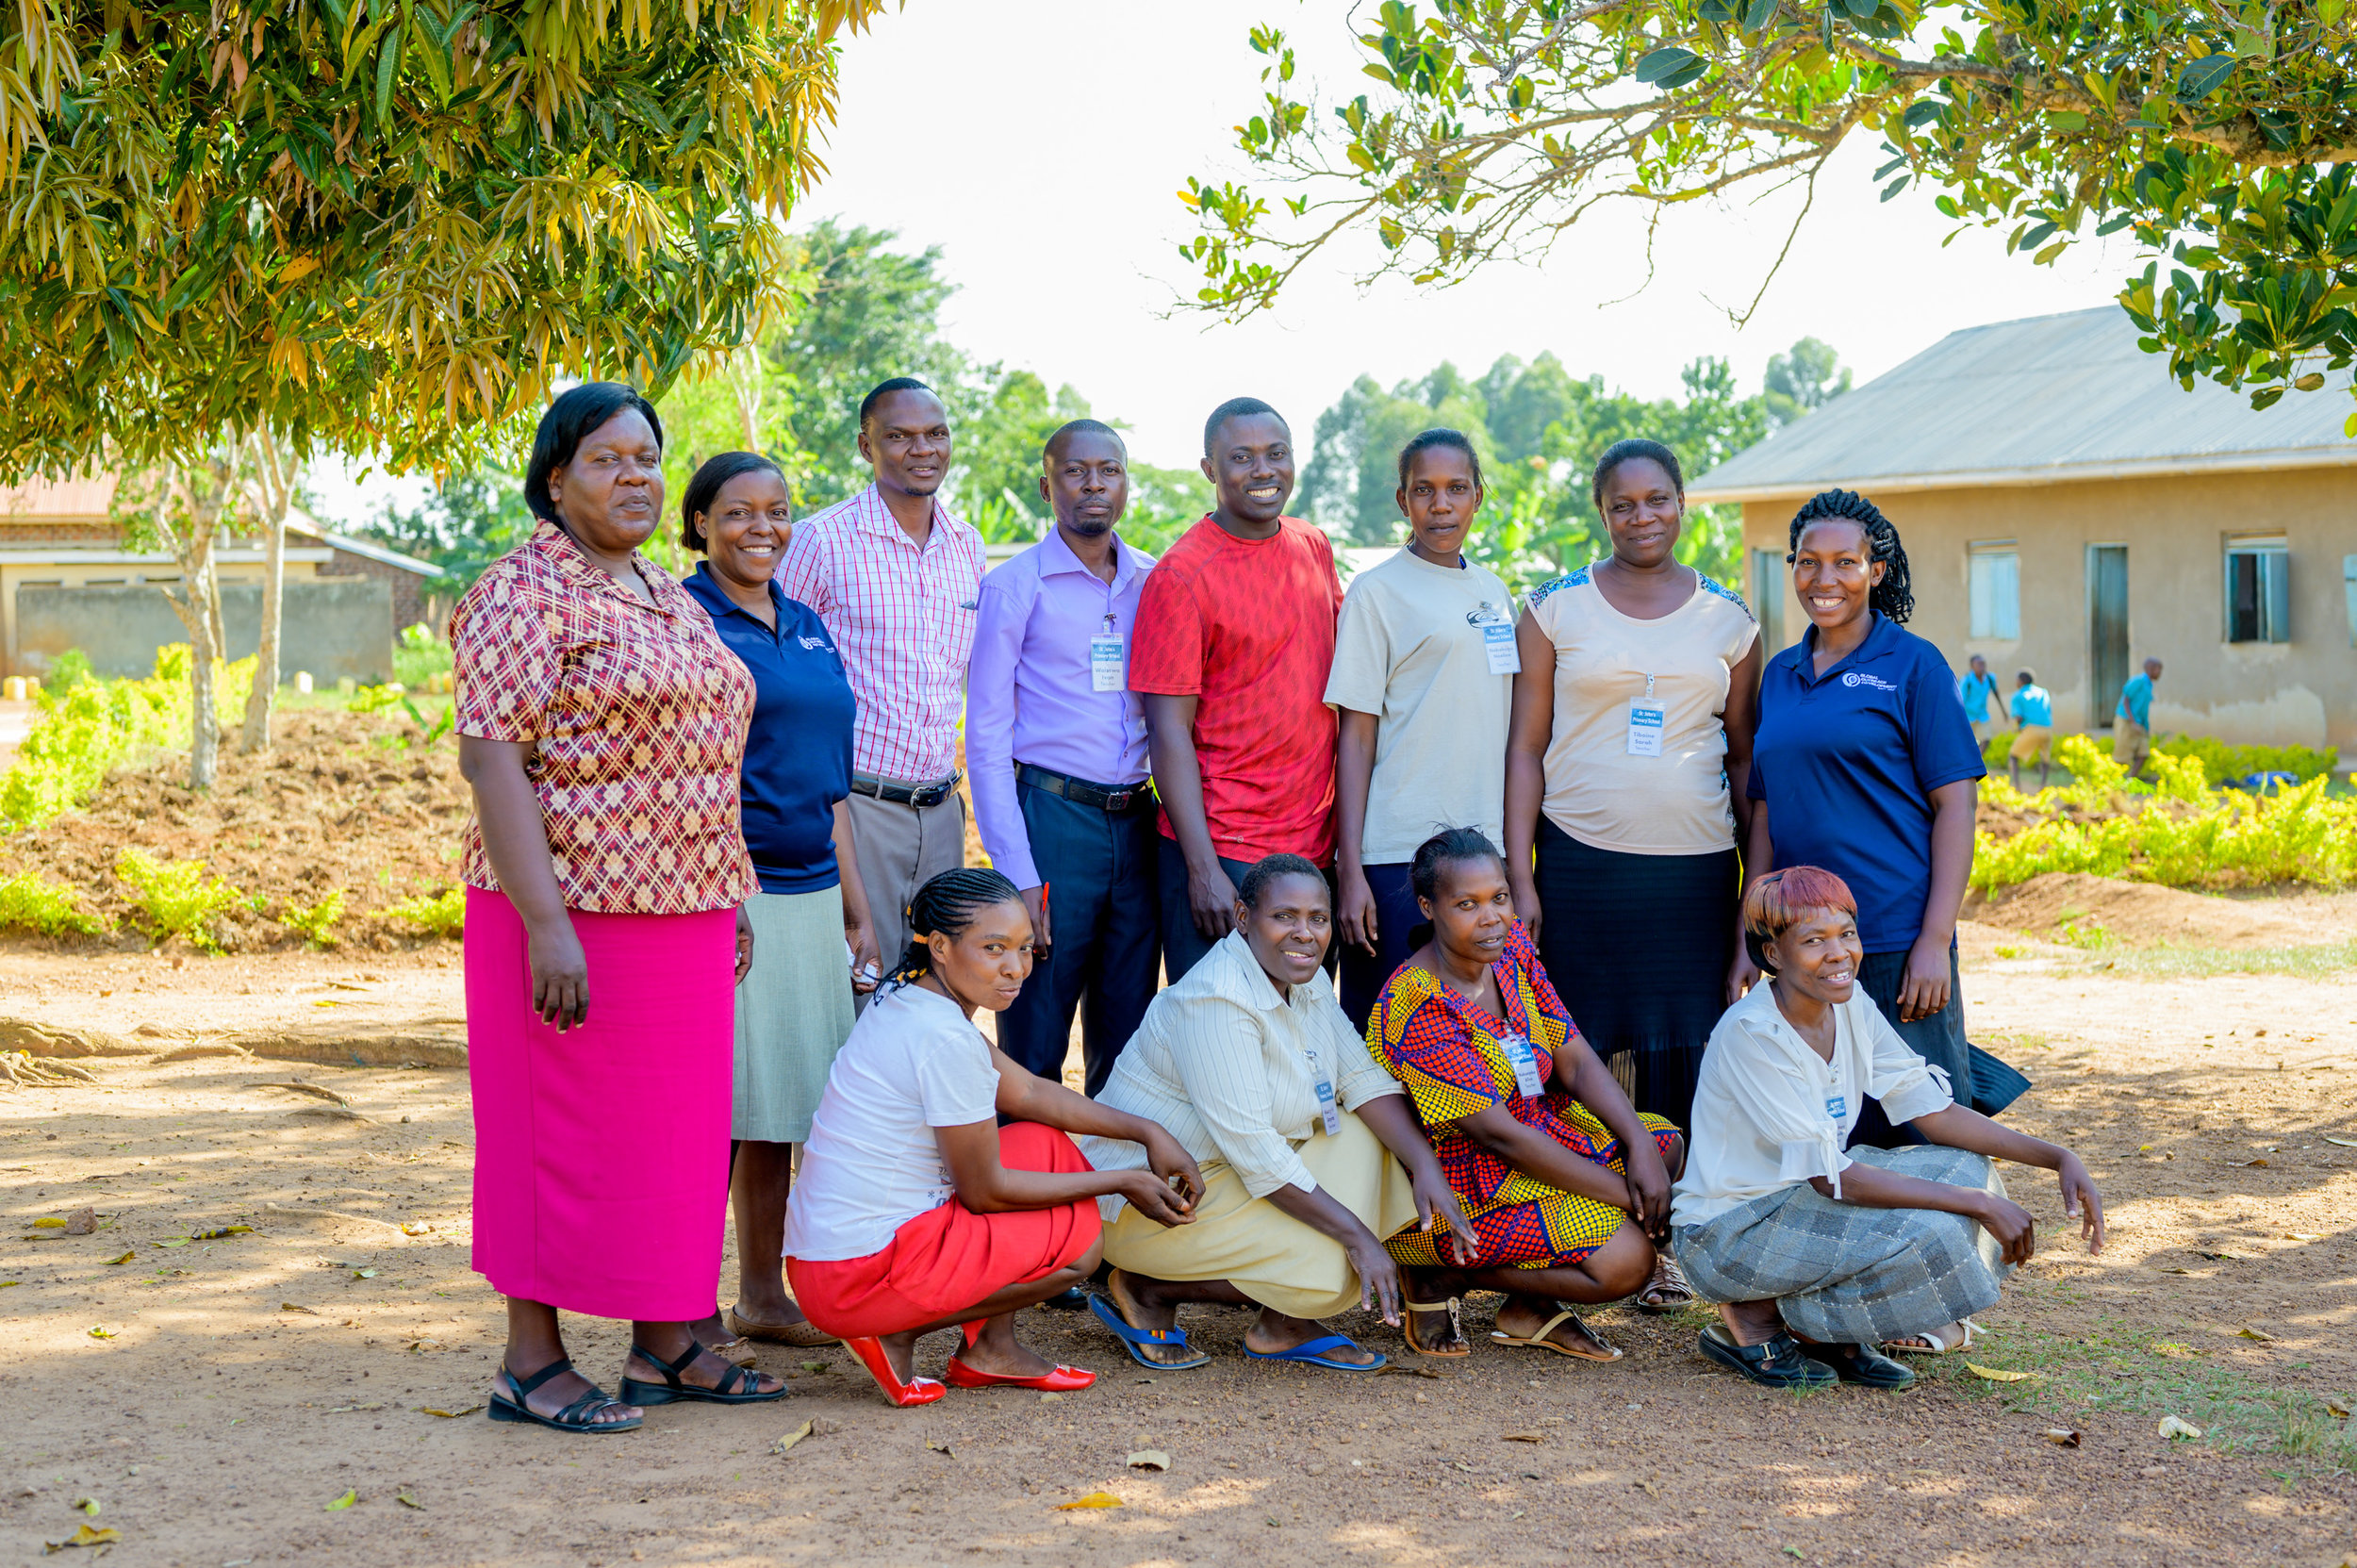 Teachers at St. John's school in March of 2019. Lawrence Ssemakula, G.O.D. Director of Education in East Africa, is in red at the center. His wife Josephine is standing second from left.